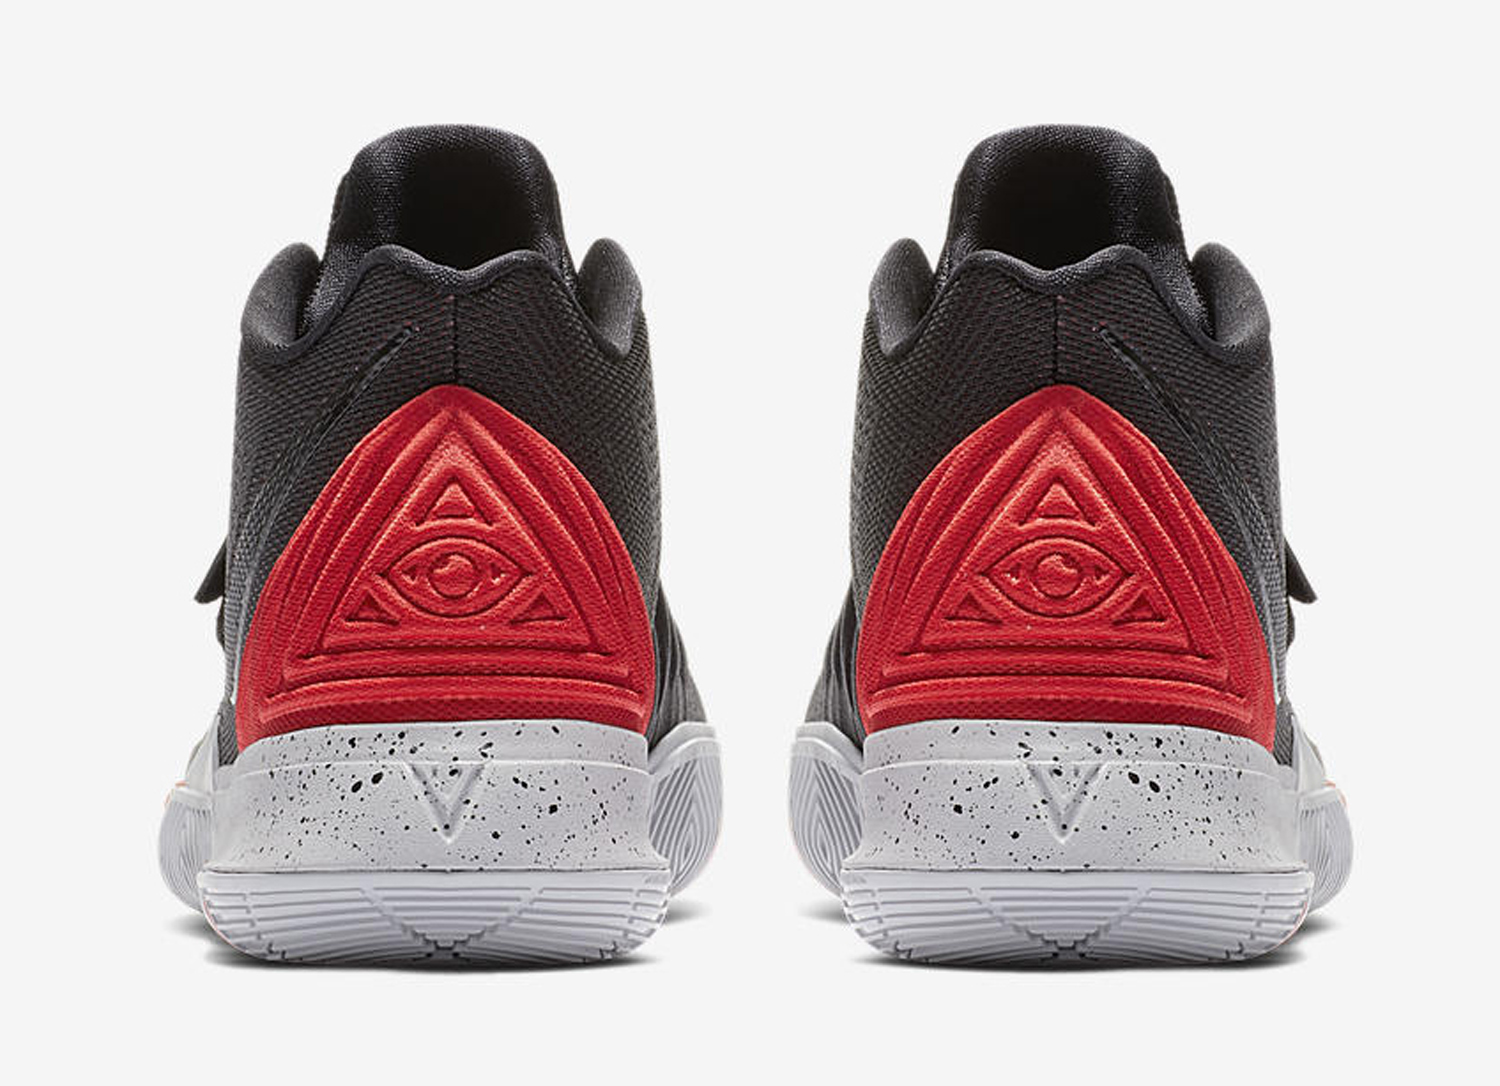 kyrie 5 black and red